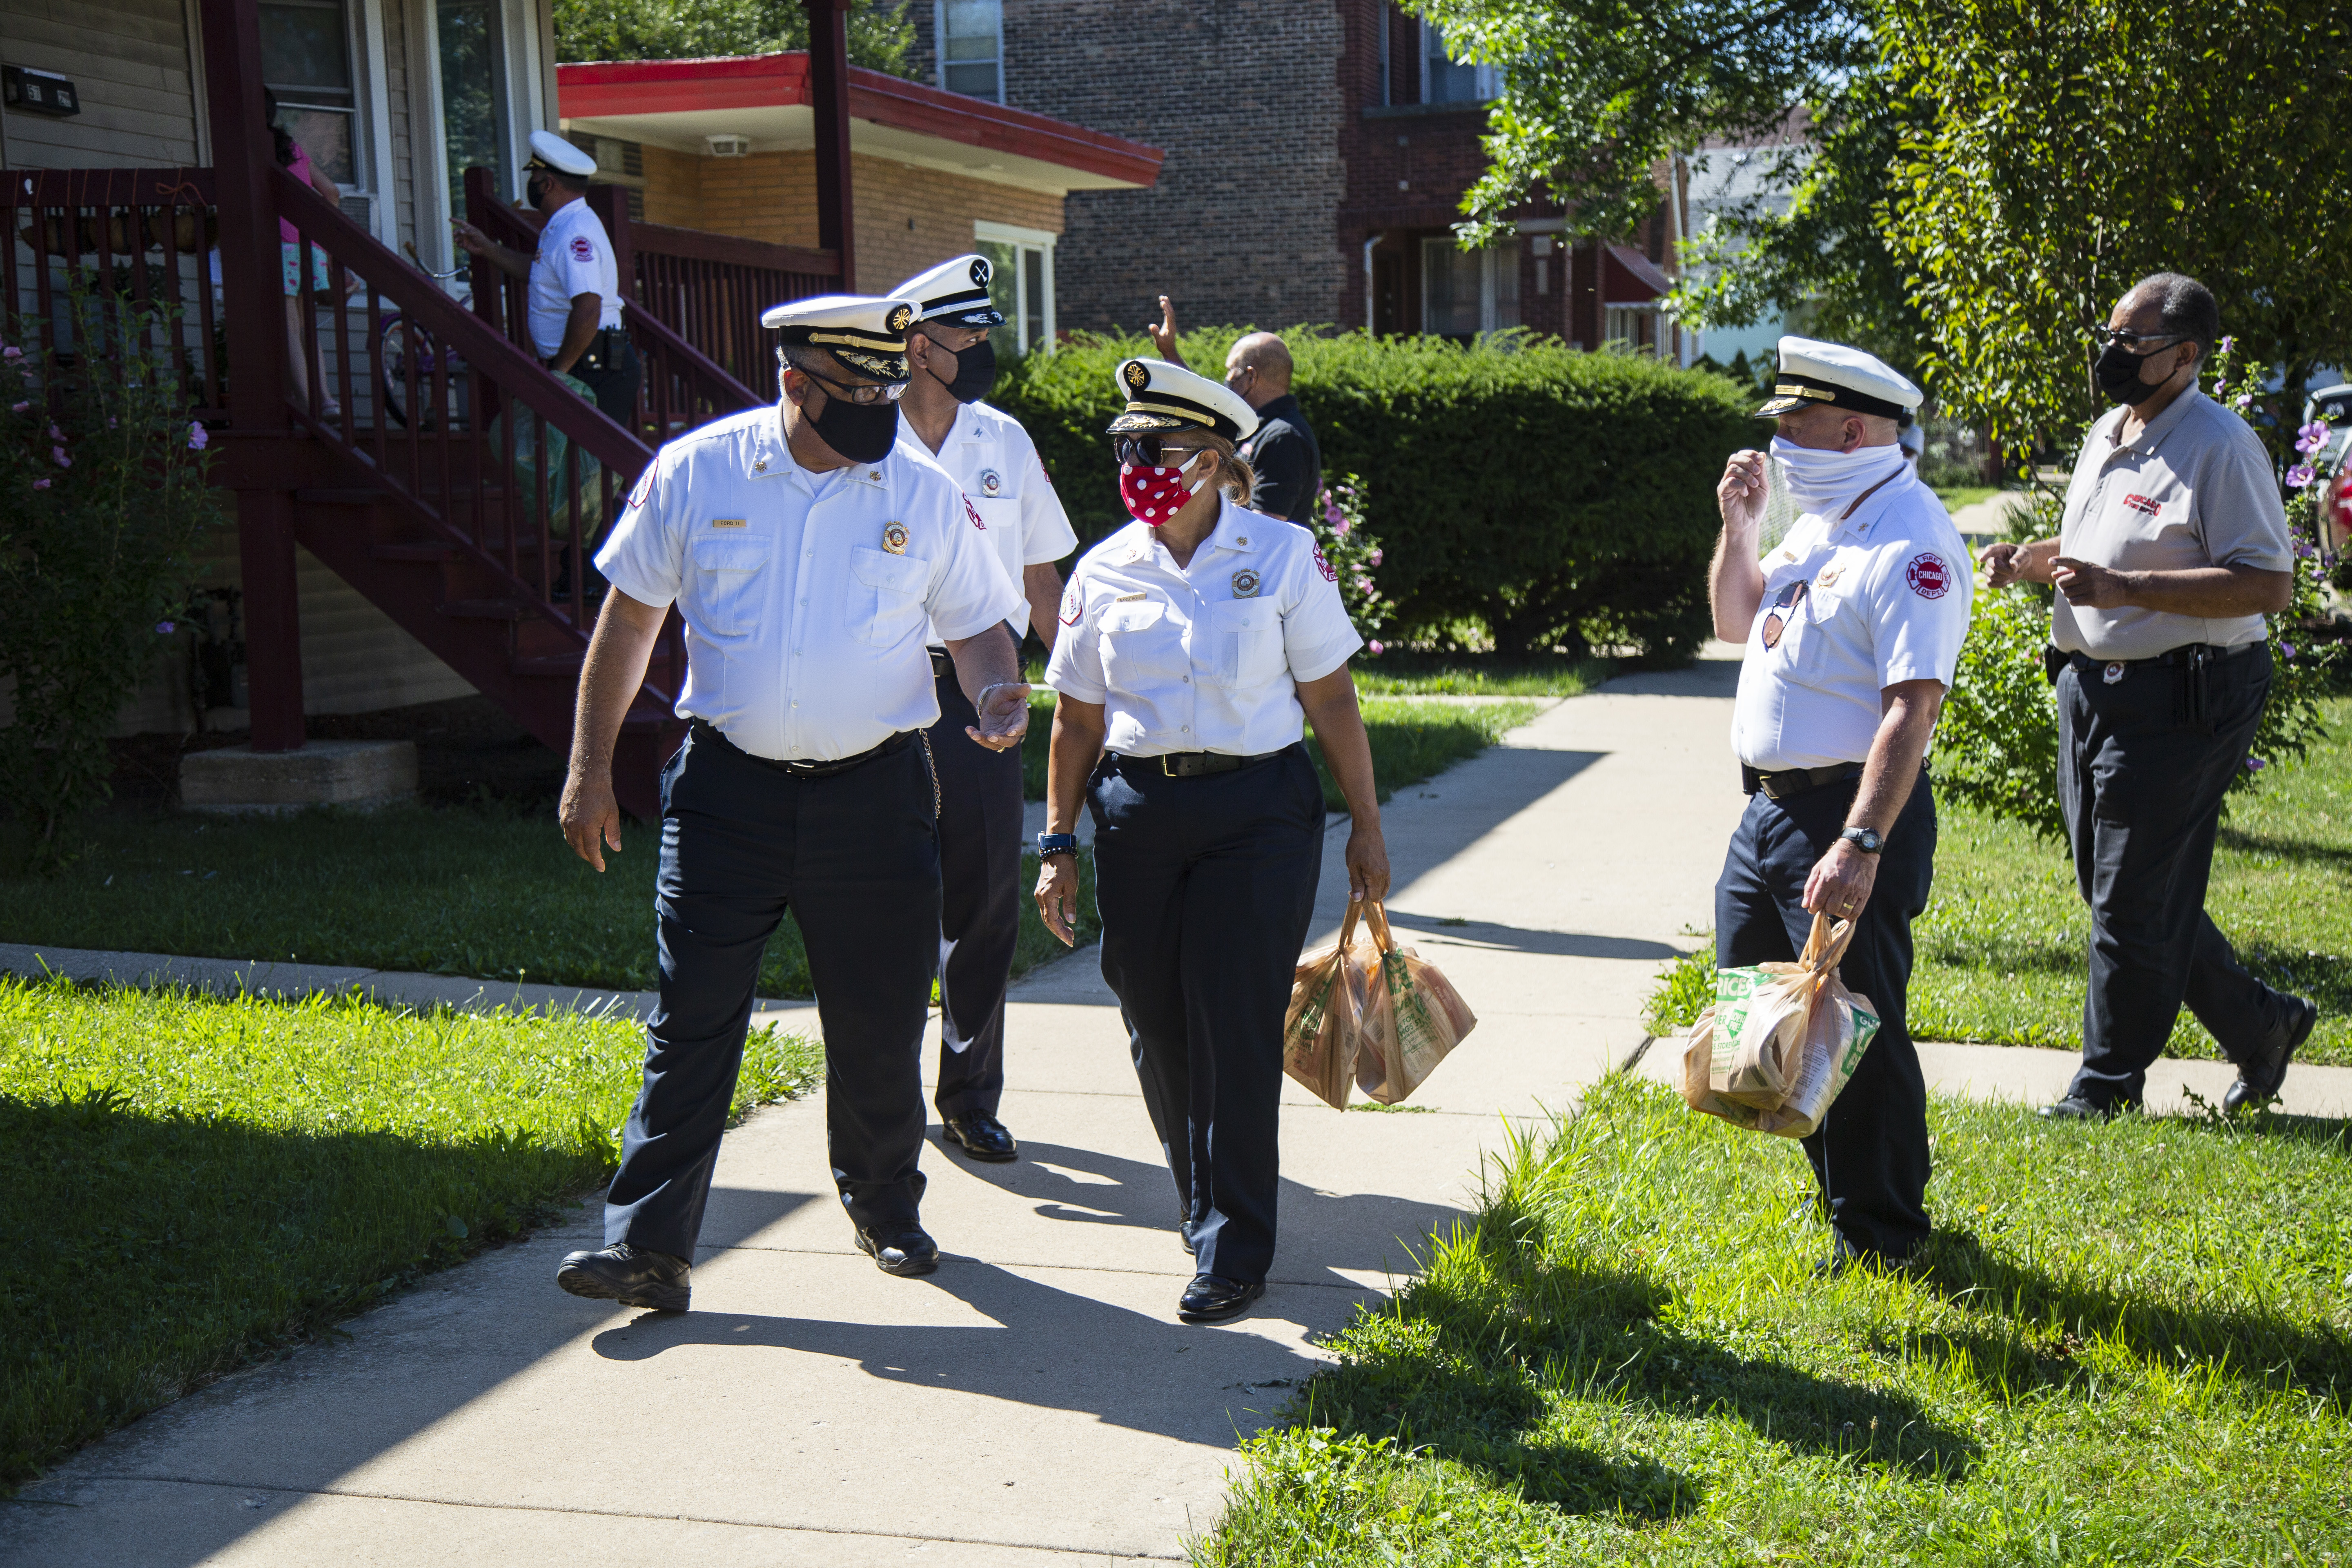 Chicago Fire Department officials handed out smoke detectors on the 5700 block of South Washtenaw Avenue in Gage Park in August 2020 after a fatal fire in the neighborhood.